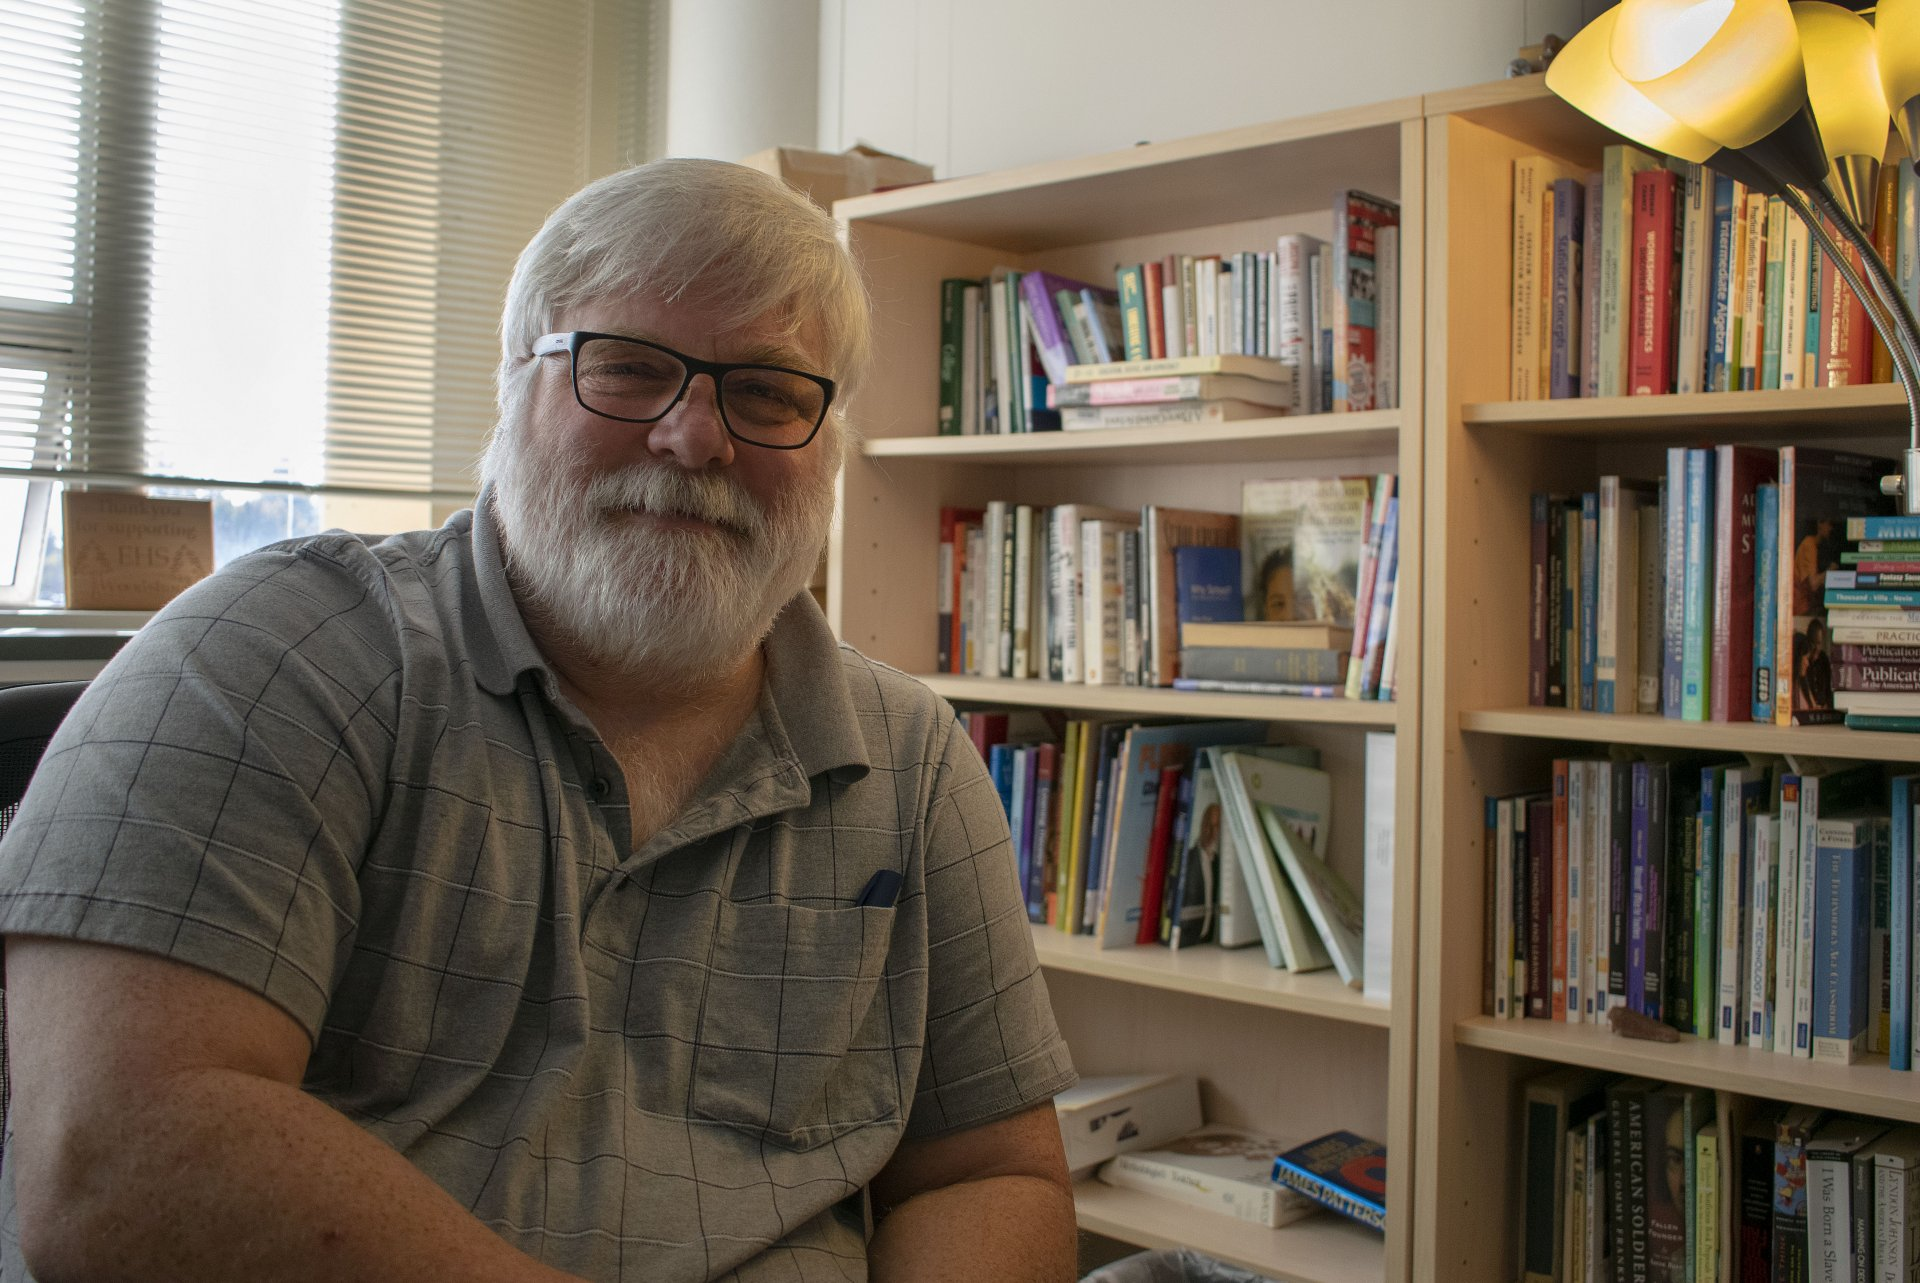 Humboldt State University Education Department Chair Eric Van Duzer sits in his office November 15, 2019. Retiring in May, Van Duzer has spent nearly 30 years at HSU and is calling for a returned focus on student success. | Photo by James Wilde